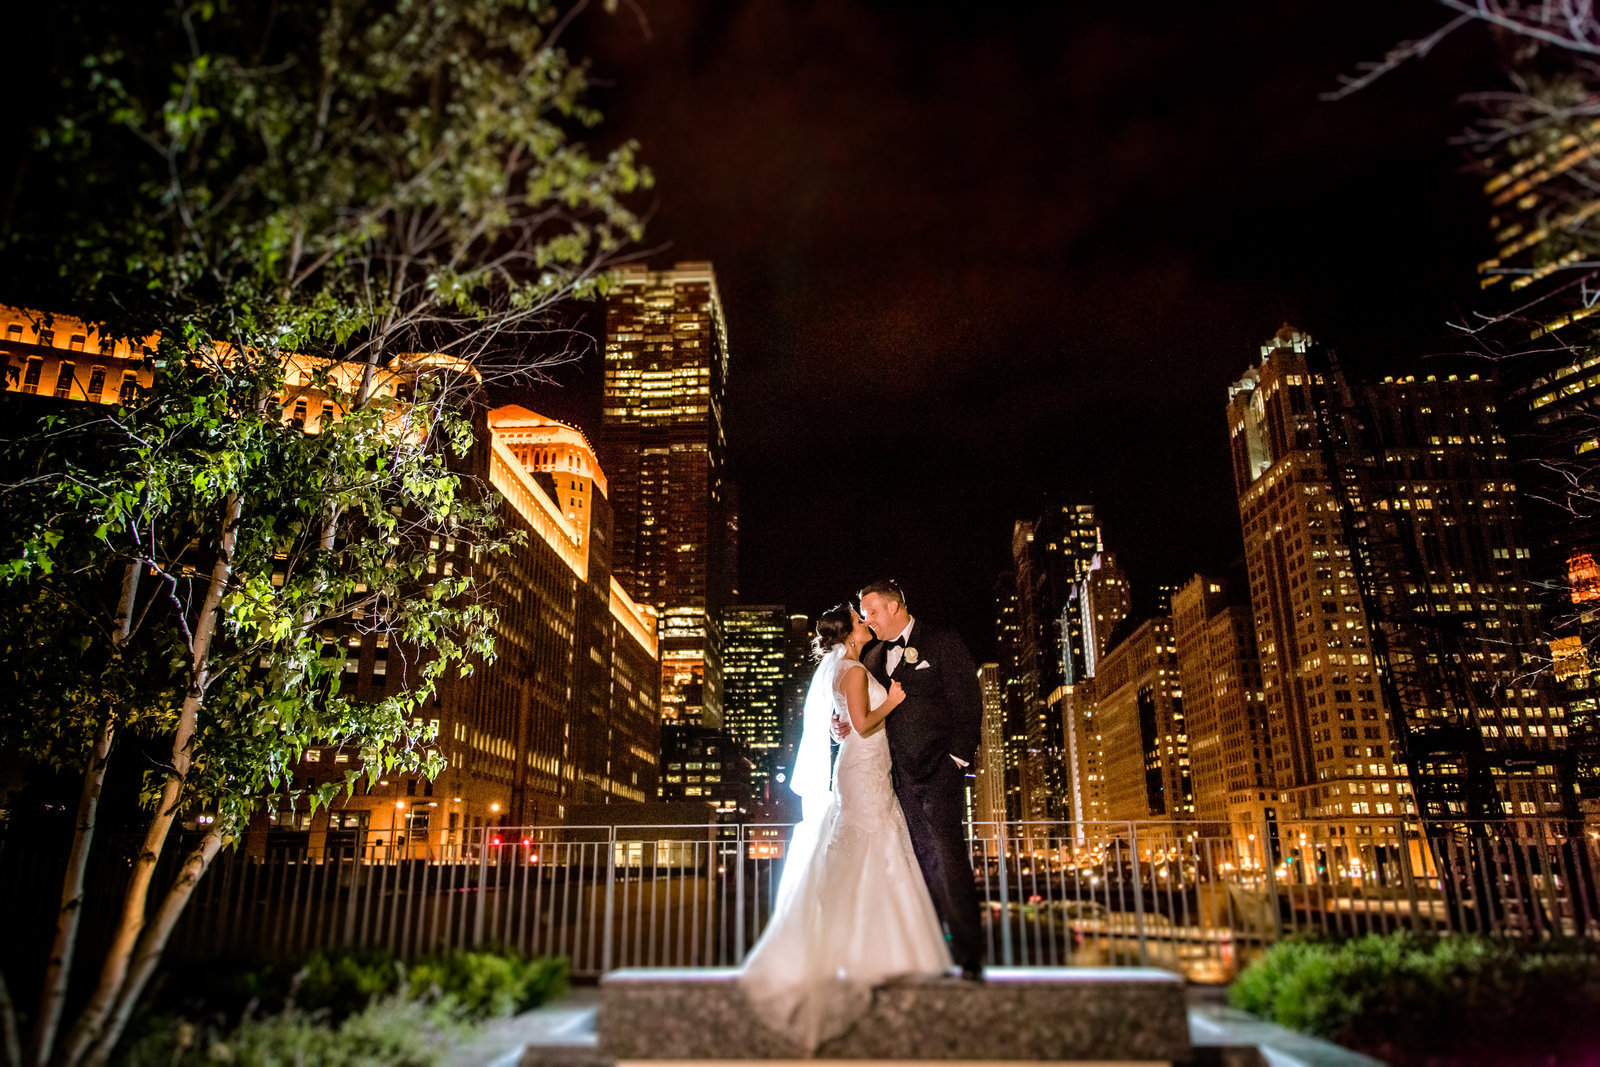 Chicago night wedding